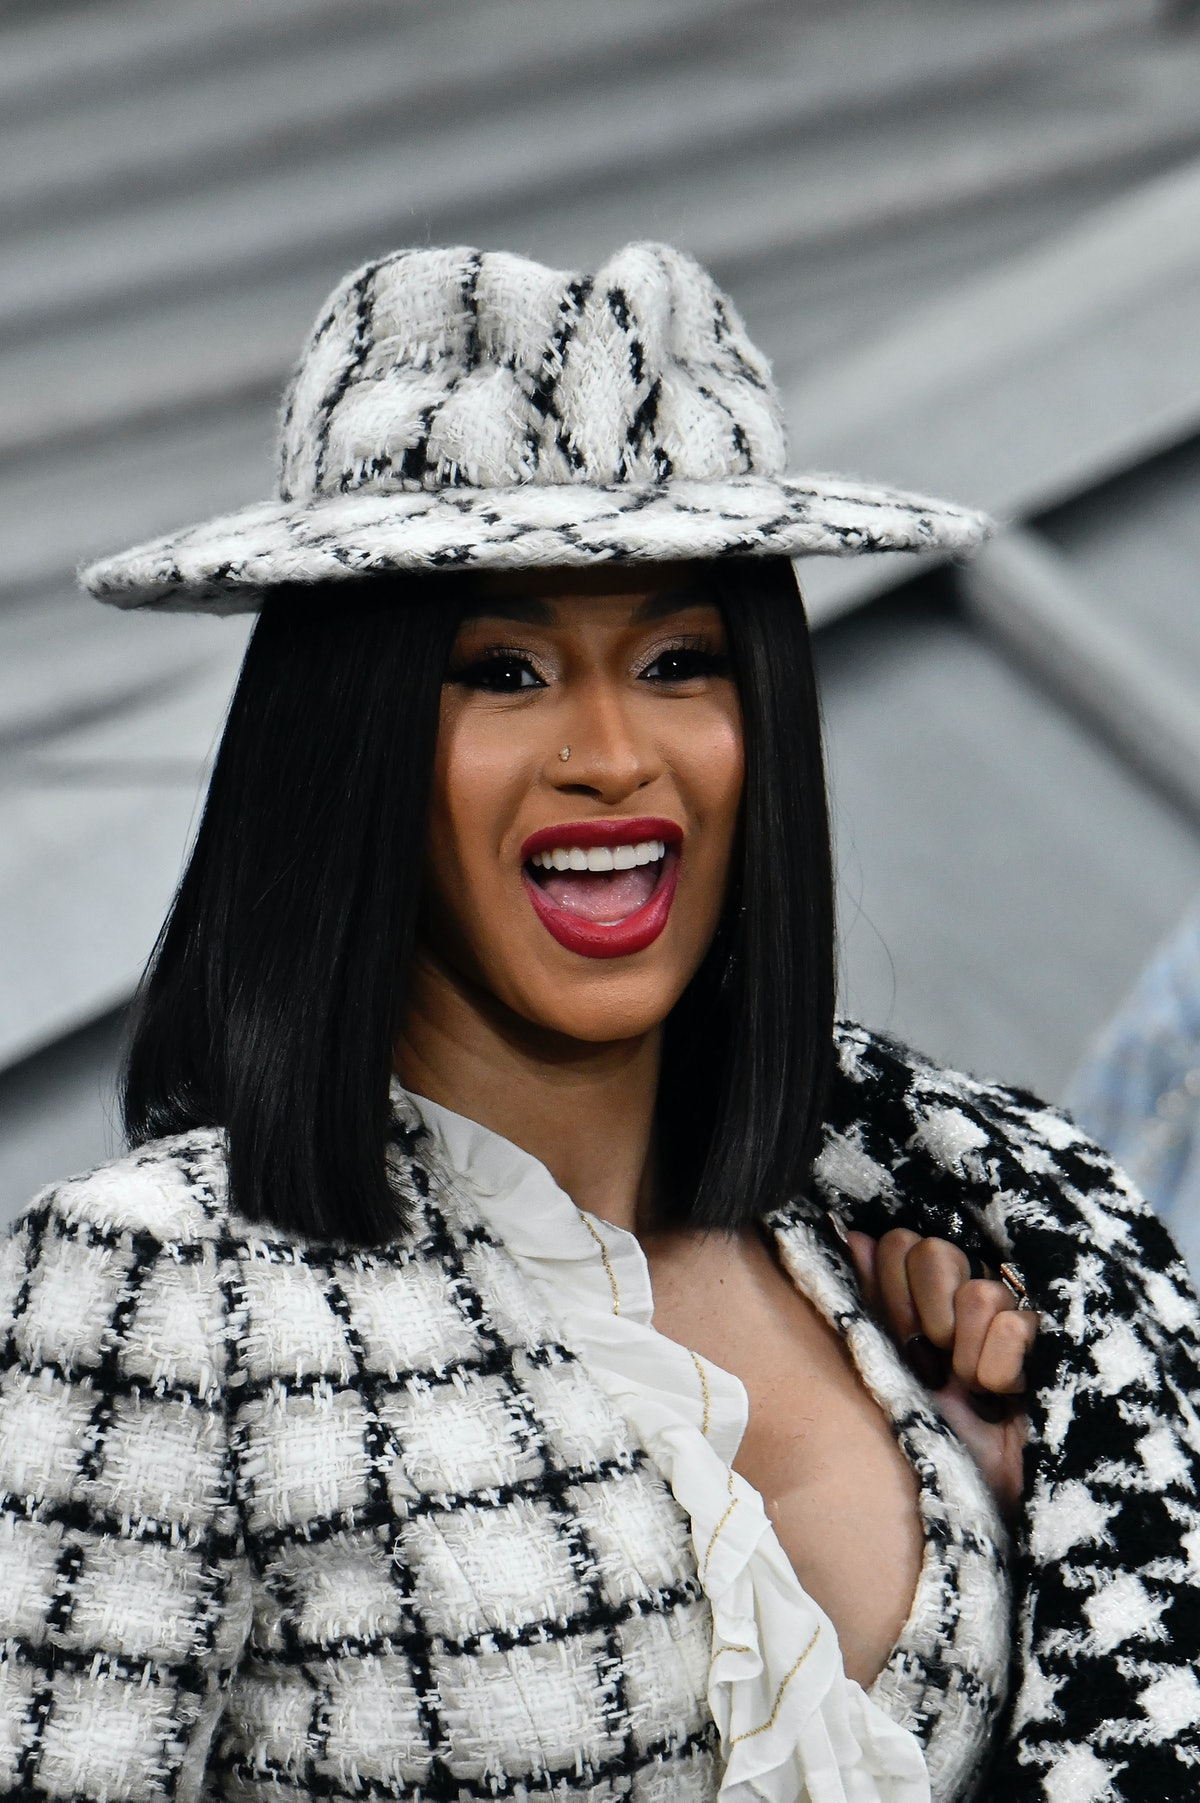 Cardi B steps out in a patterned black and white ensemble.